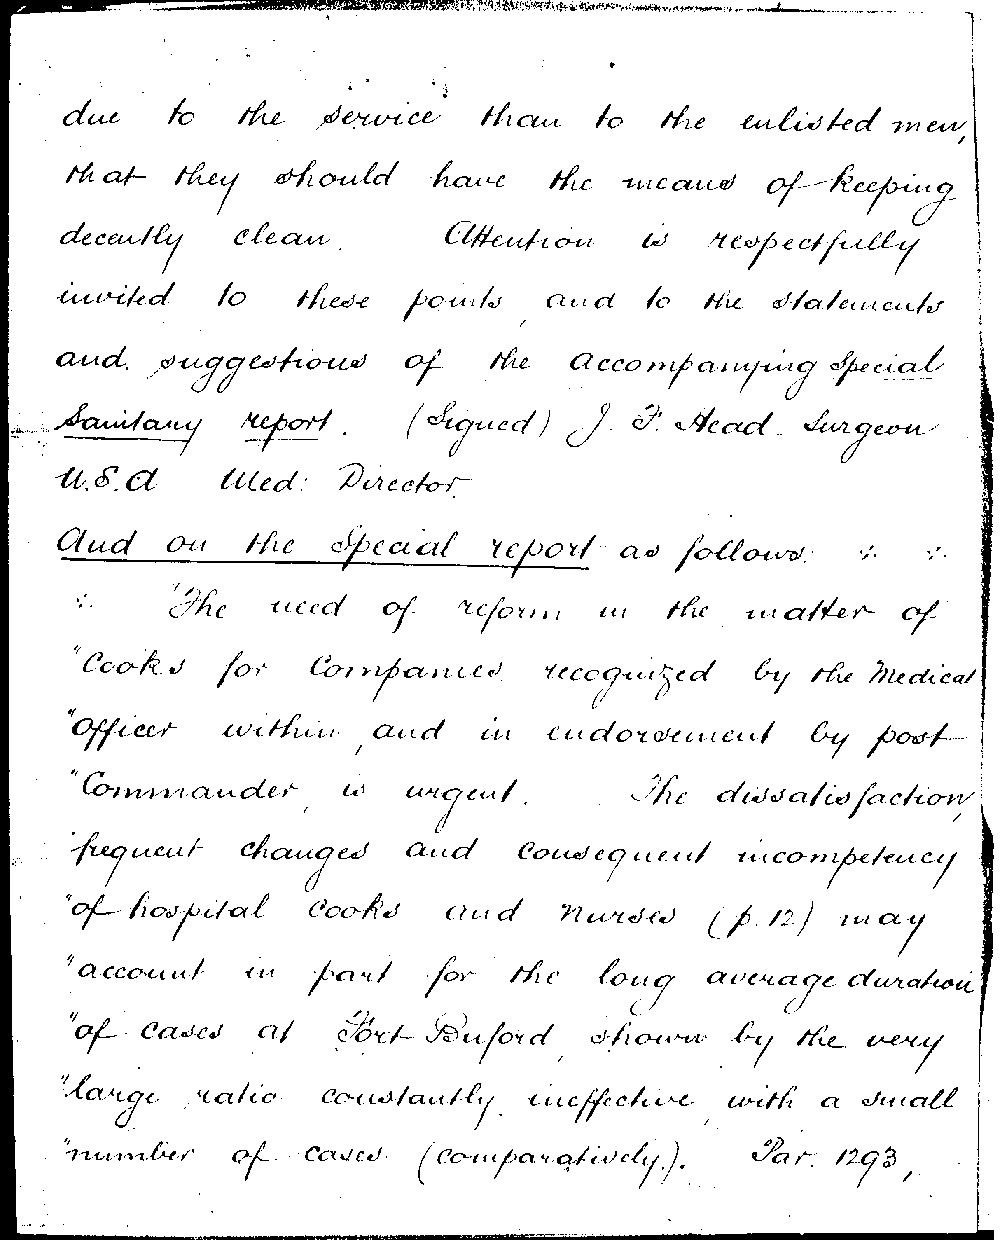 The Sanitation Report from Fort Buford identifies several conditions contributing to poor health among the enlisted soldiers. Most shocking is the lack of bathing facilities. Men bathed in the Missouri River in the summer and apparently did not bathe during the winter. When Fort Buford was re-built, a water tower was built to provide clean water for drinking and bathing at the post.